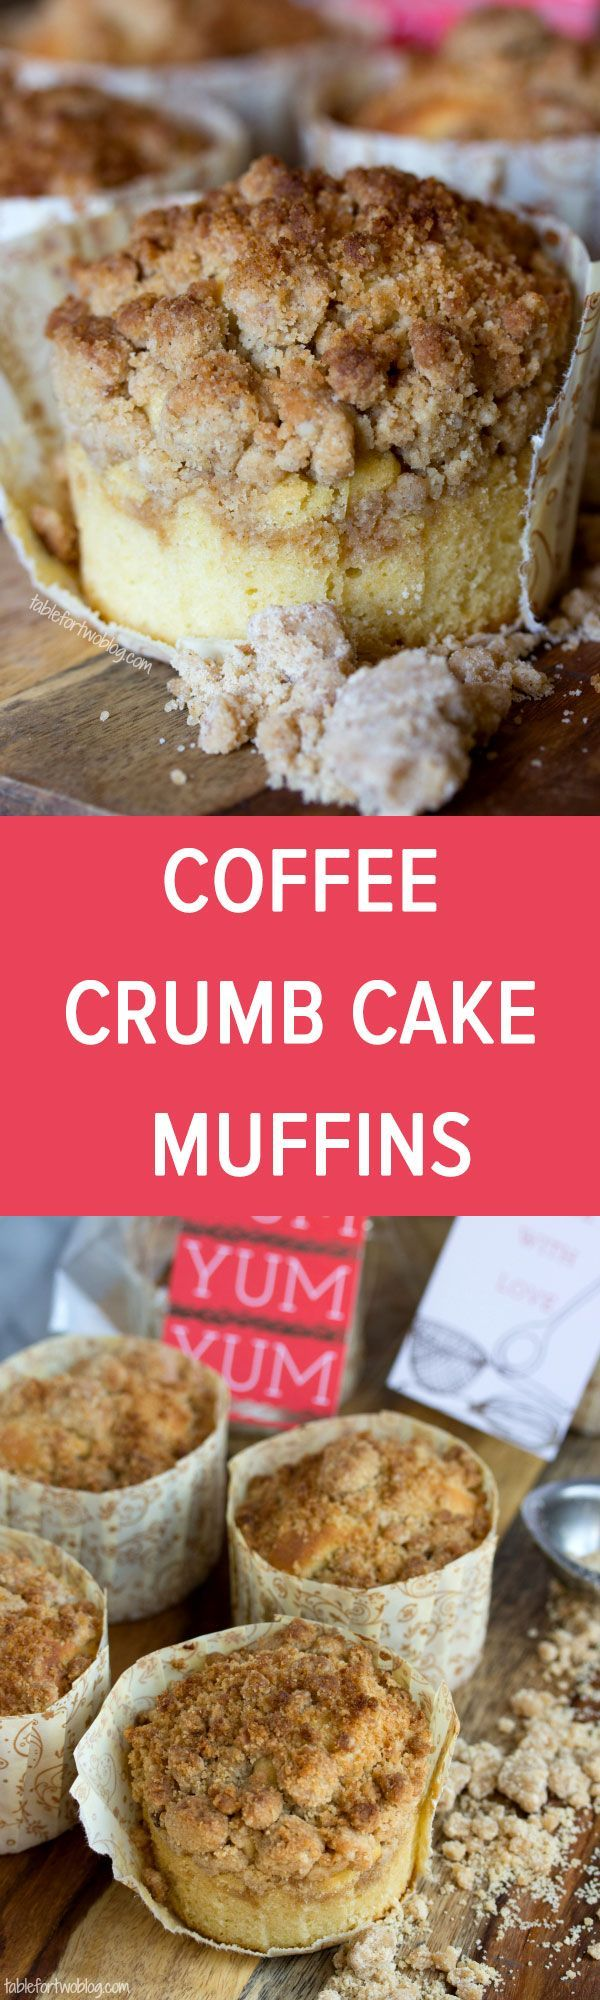 New York-Style Coffee Cake Crumb Muffins from http://www.tablefortwoblog.com